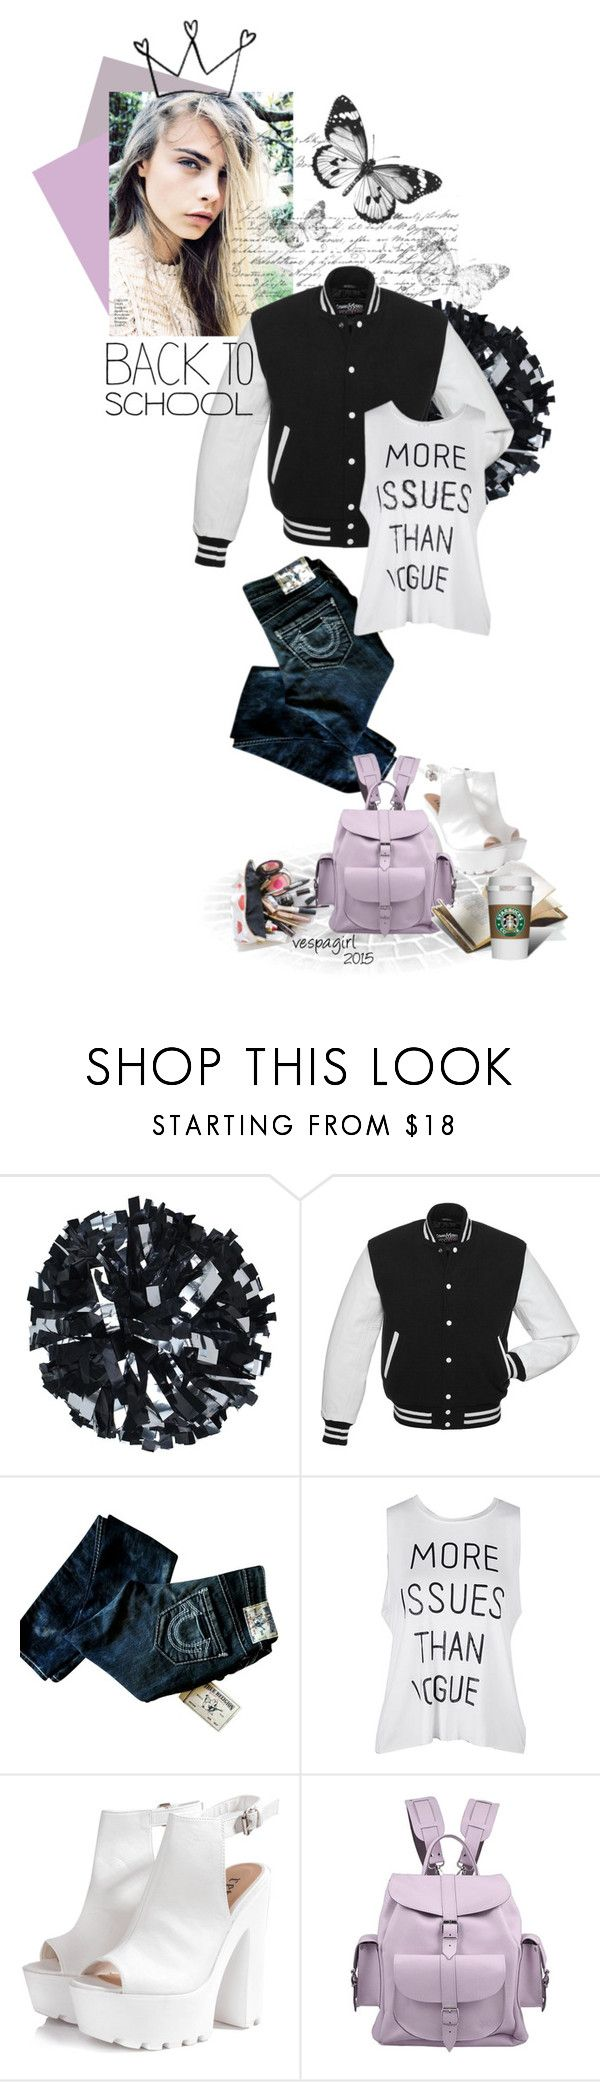 """""""Back to School Jacket"""" by vespagirl ❤ liked on Polyvore featuring True Religion, Glamorous, Grafea, BackToSchool, jacket and Letterman"""